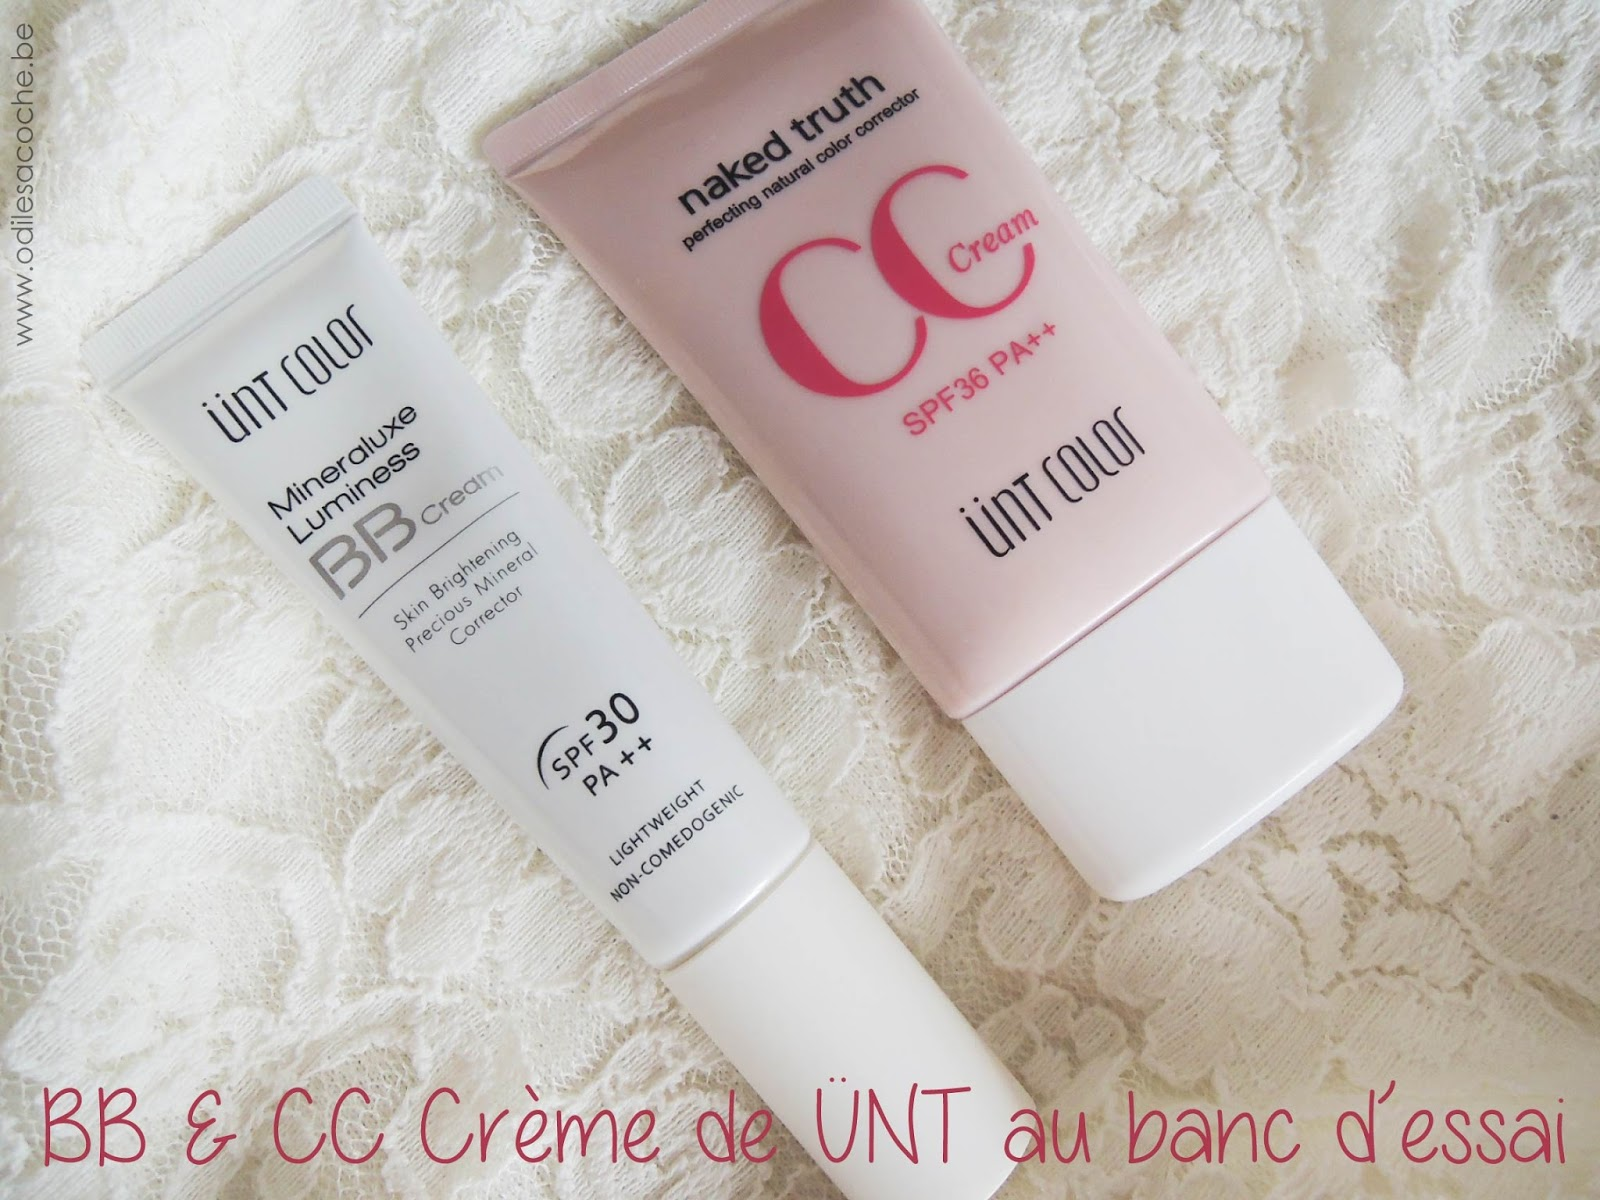 BB & CC cream ÜNT